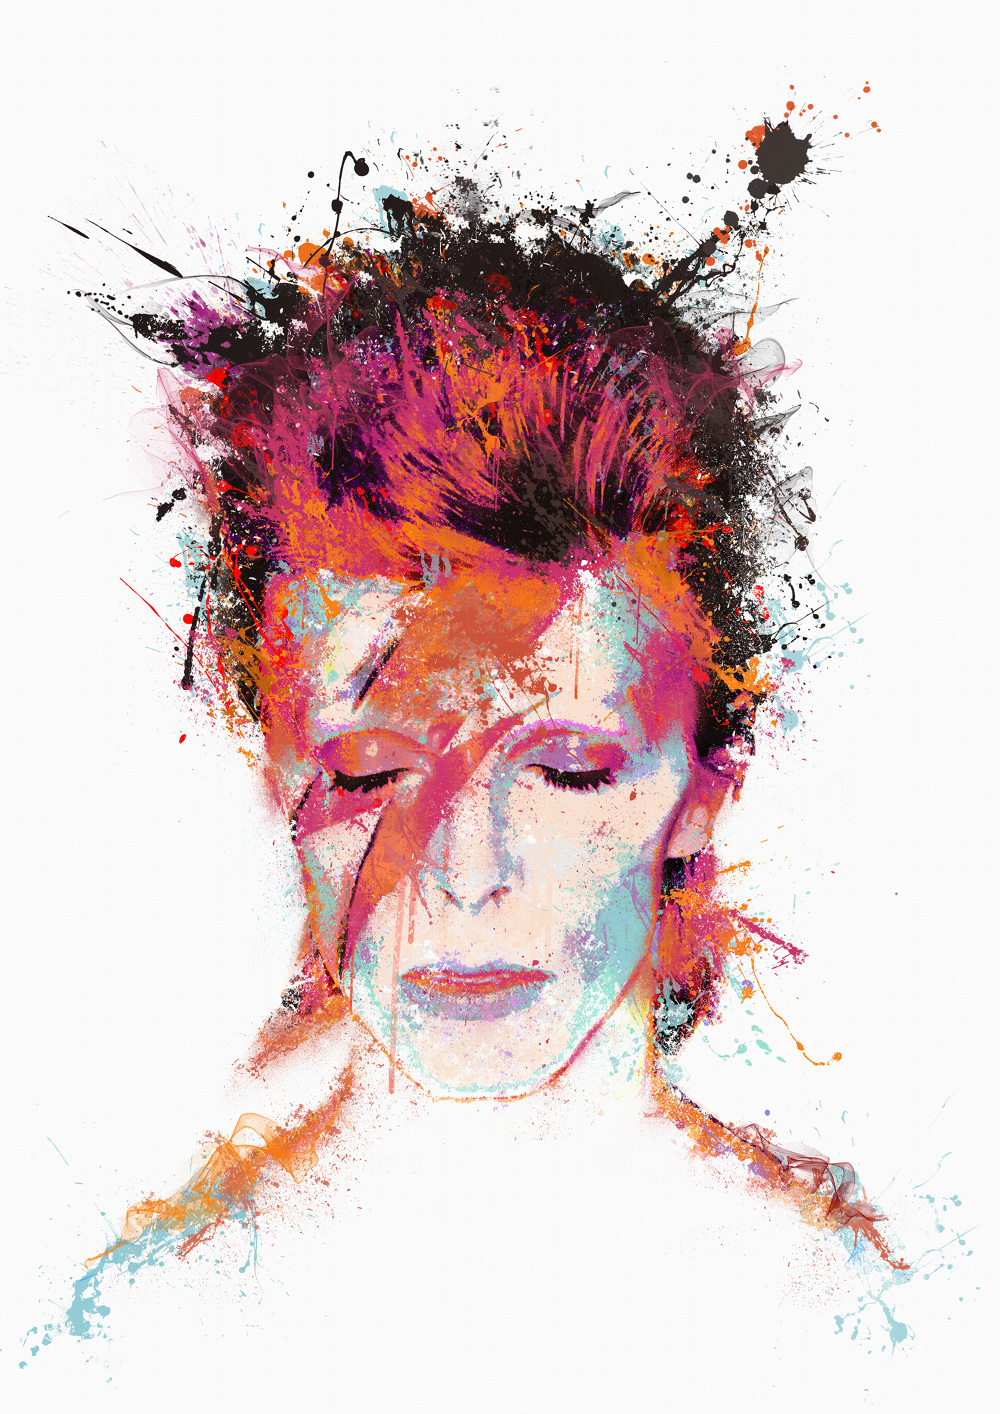 bowie2016_a4_1000